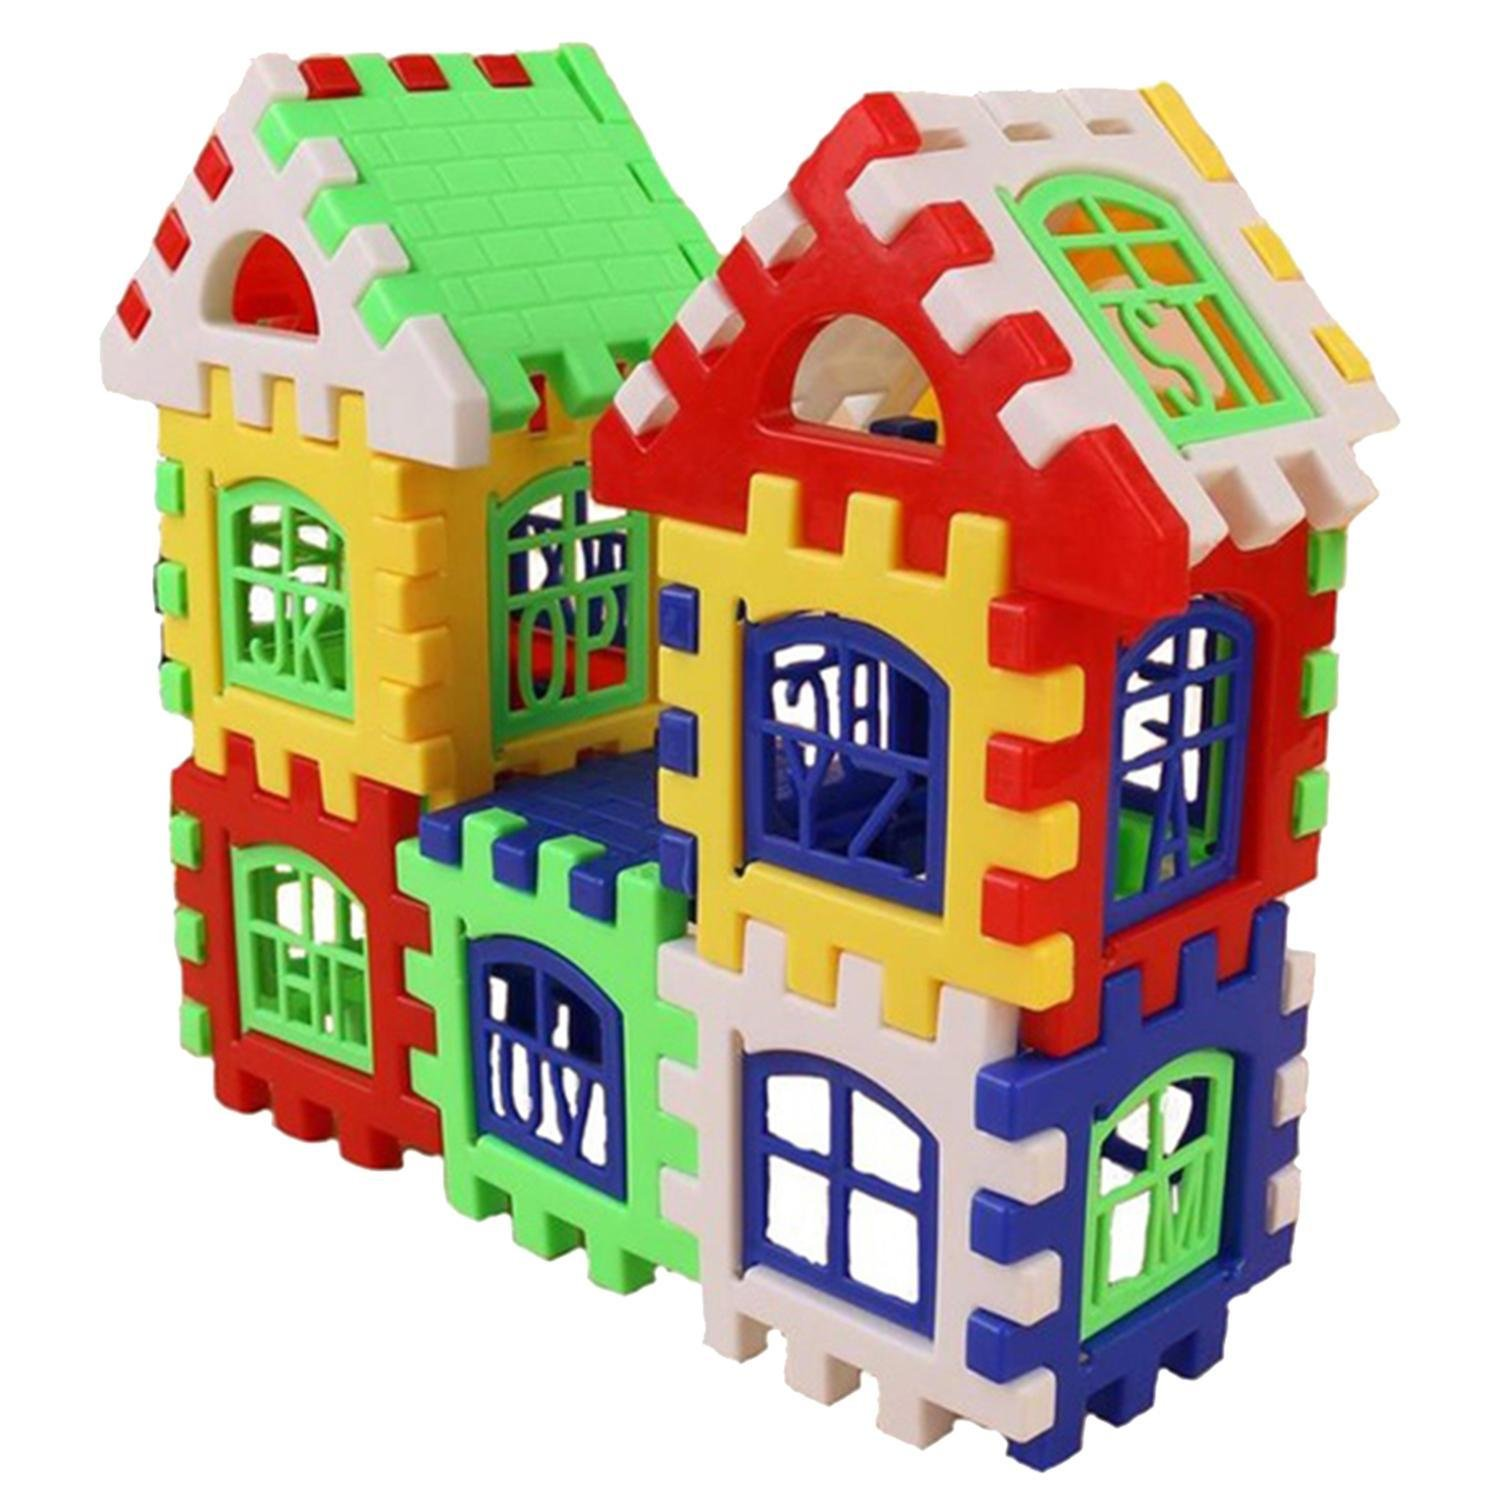 Aelove 24pcs DIY House Building Blocks Toys Kids Creative Educational Construction Toy